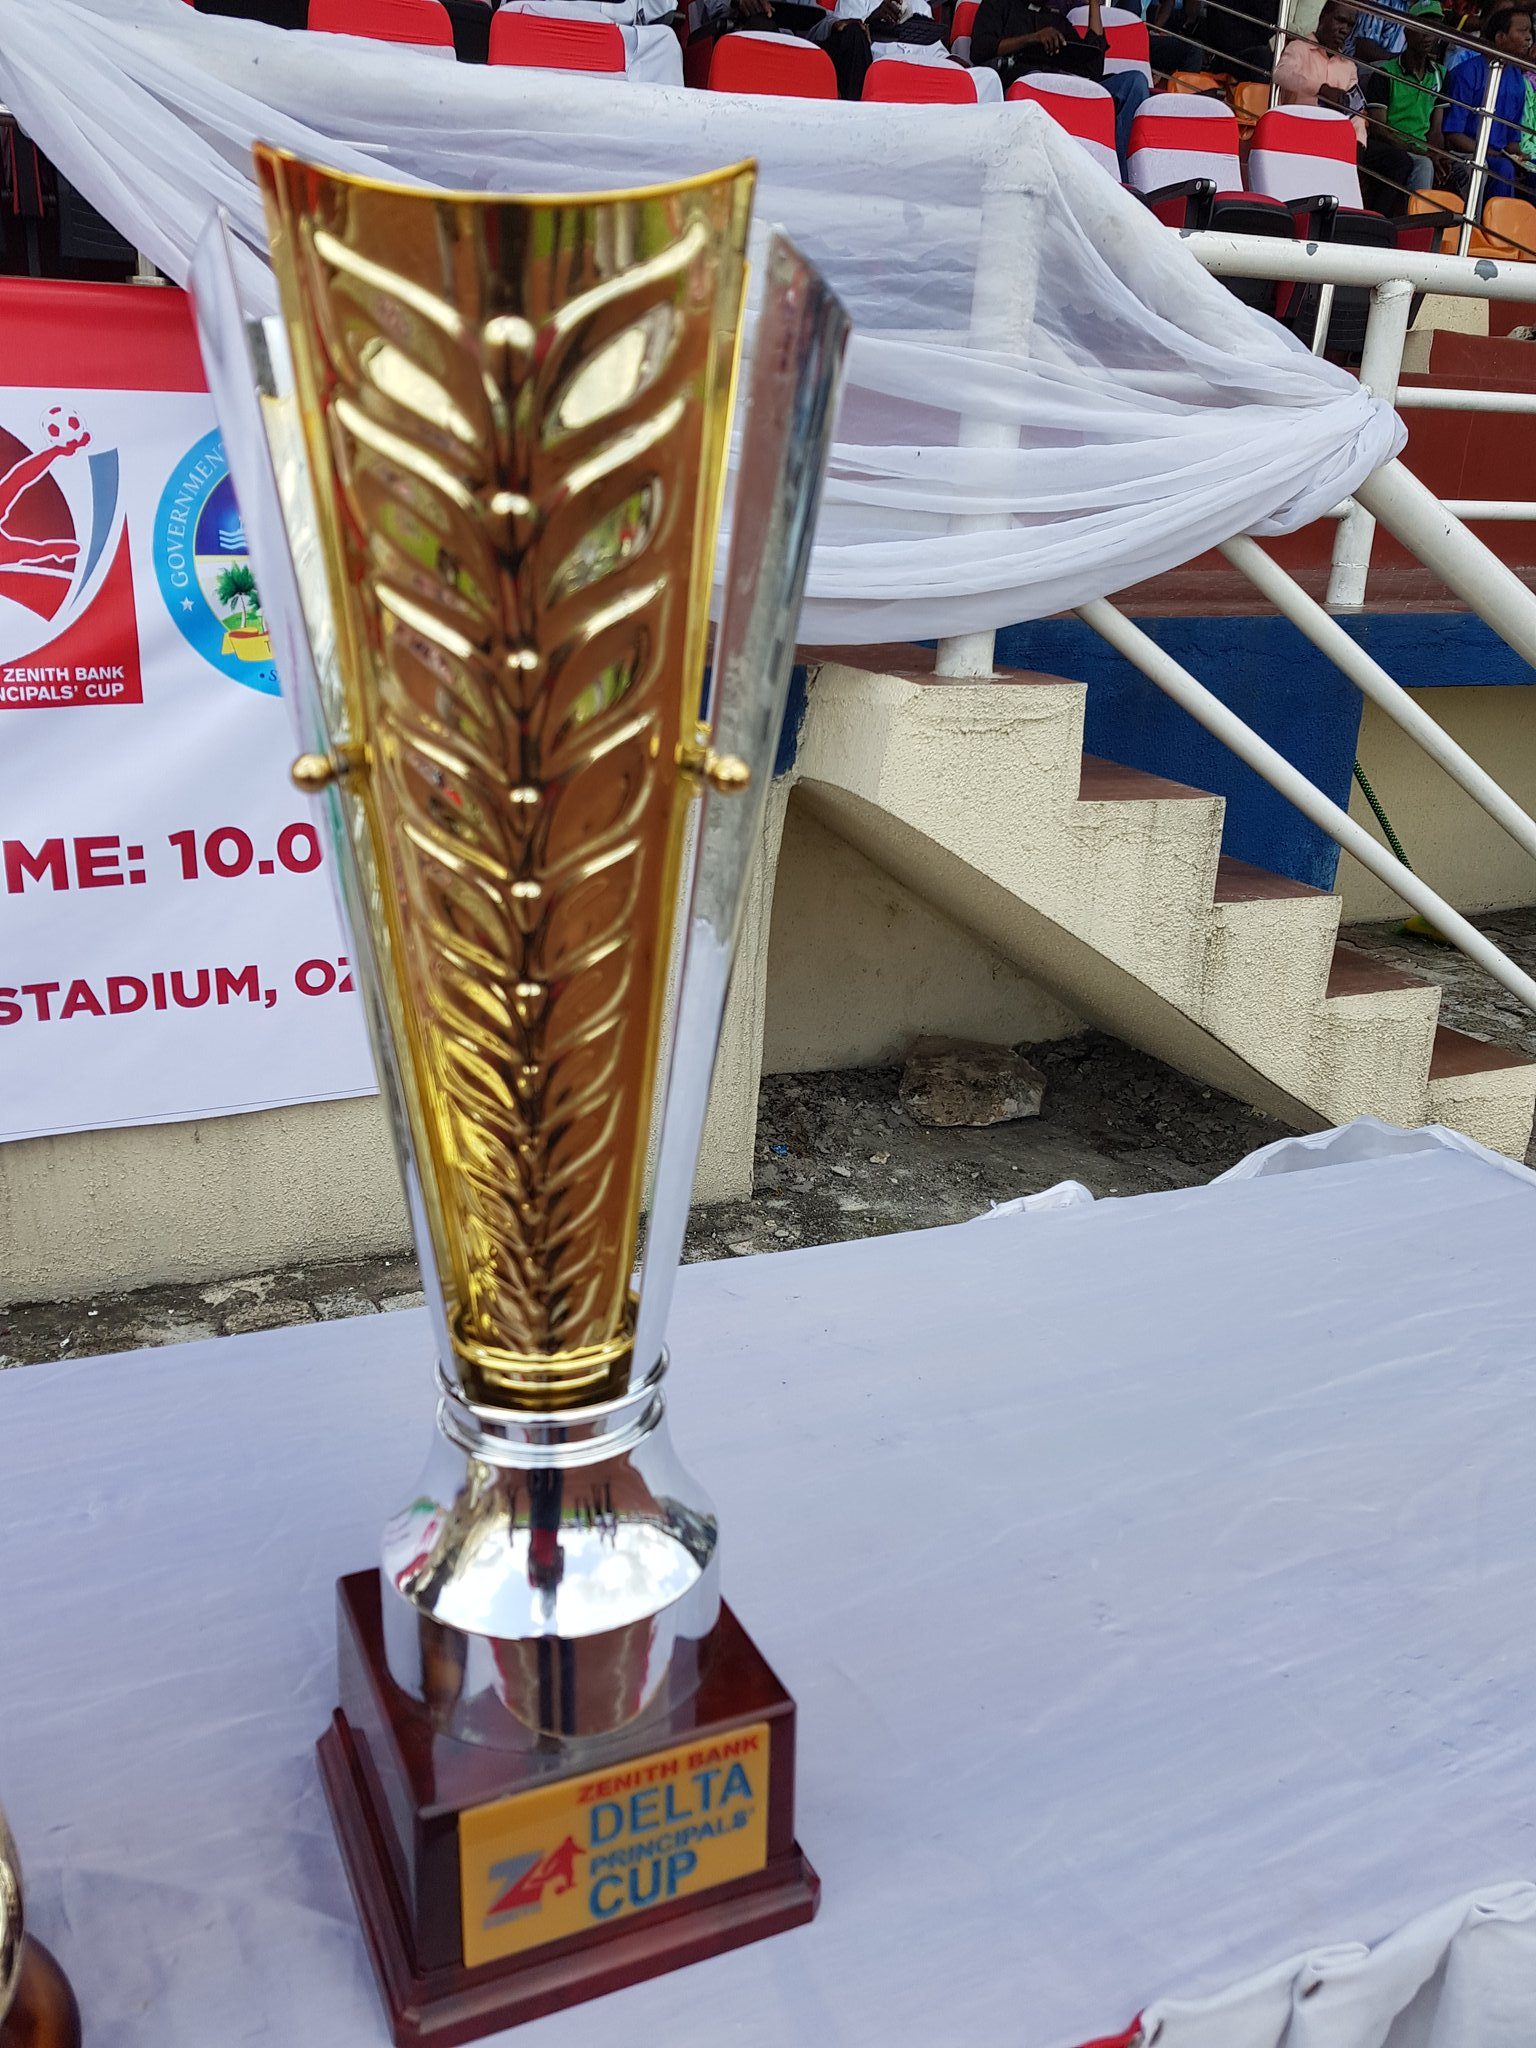 Zenith Bank/Delta Principals' Cup: Four Semifinalists Emerge